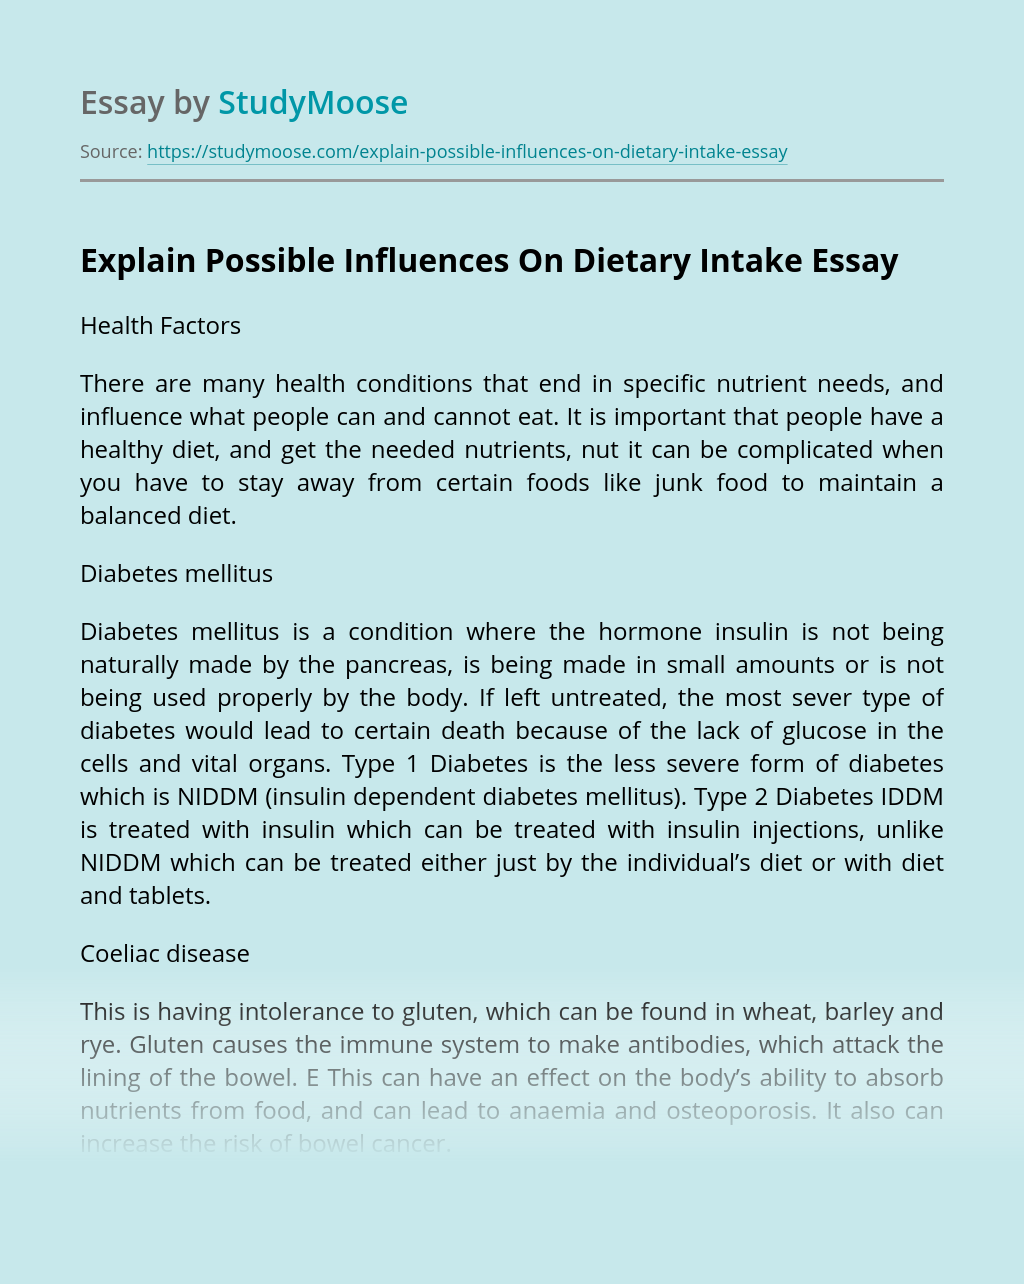 Explain Possible Influences On Dietary Intake